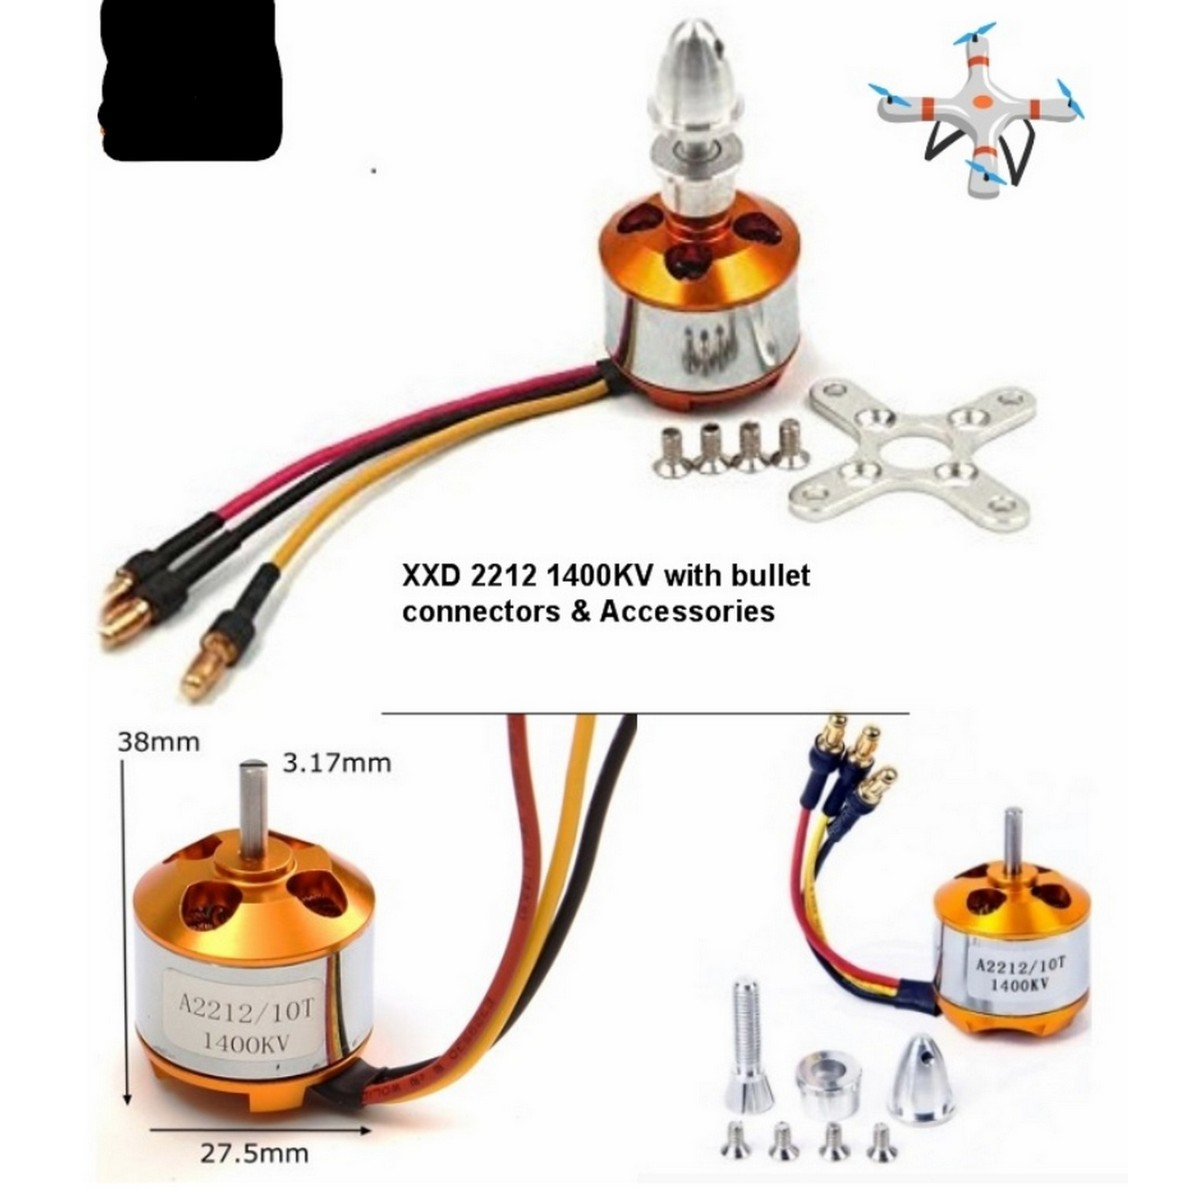 1400KV Brushless motor A2212 with Parts For Rc Plane, Quad